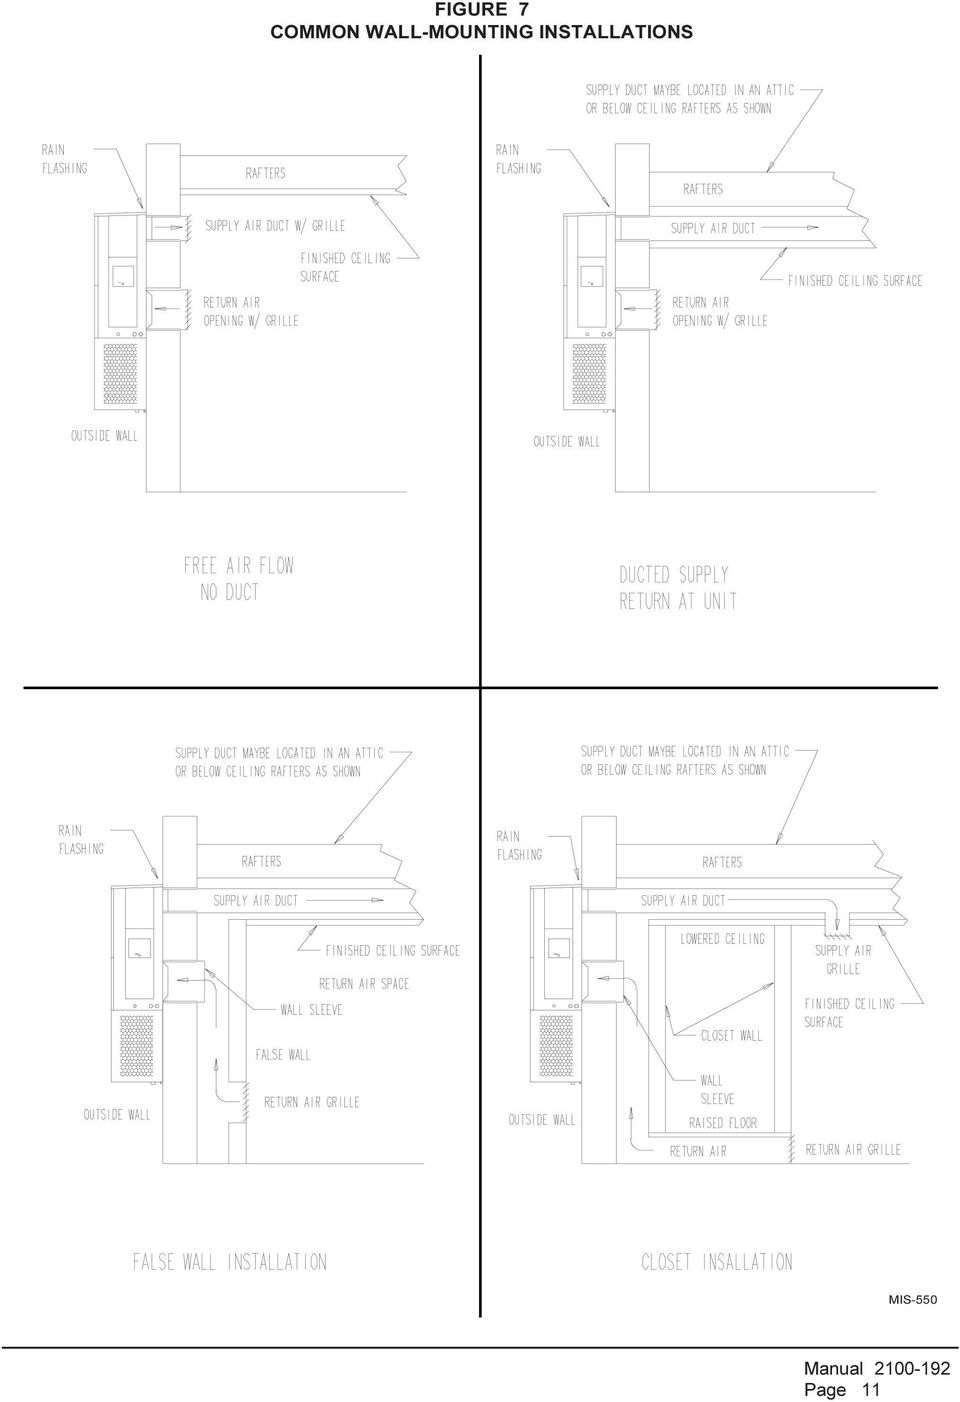 Bard Self Contained Unit Wiring Diagram on